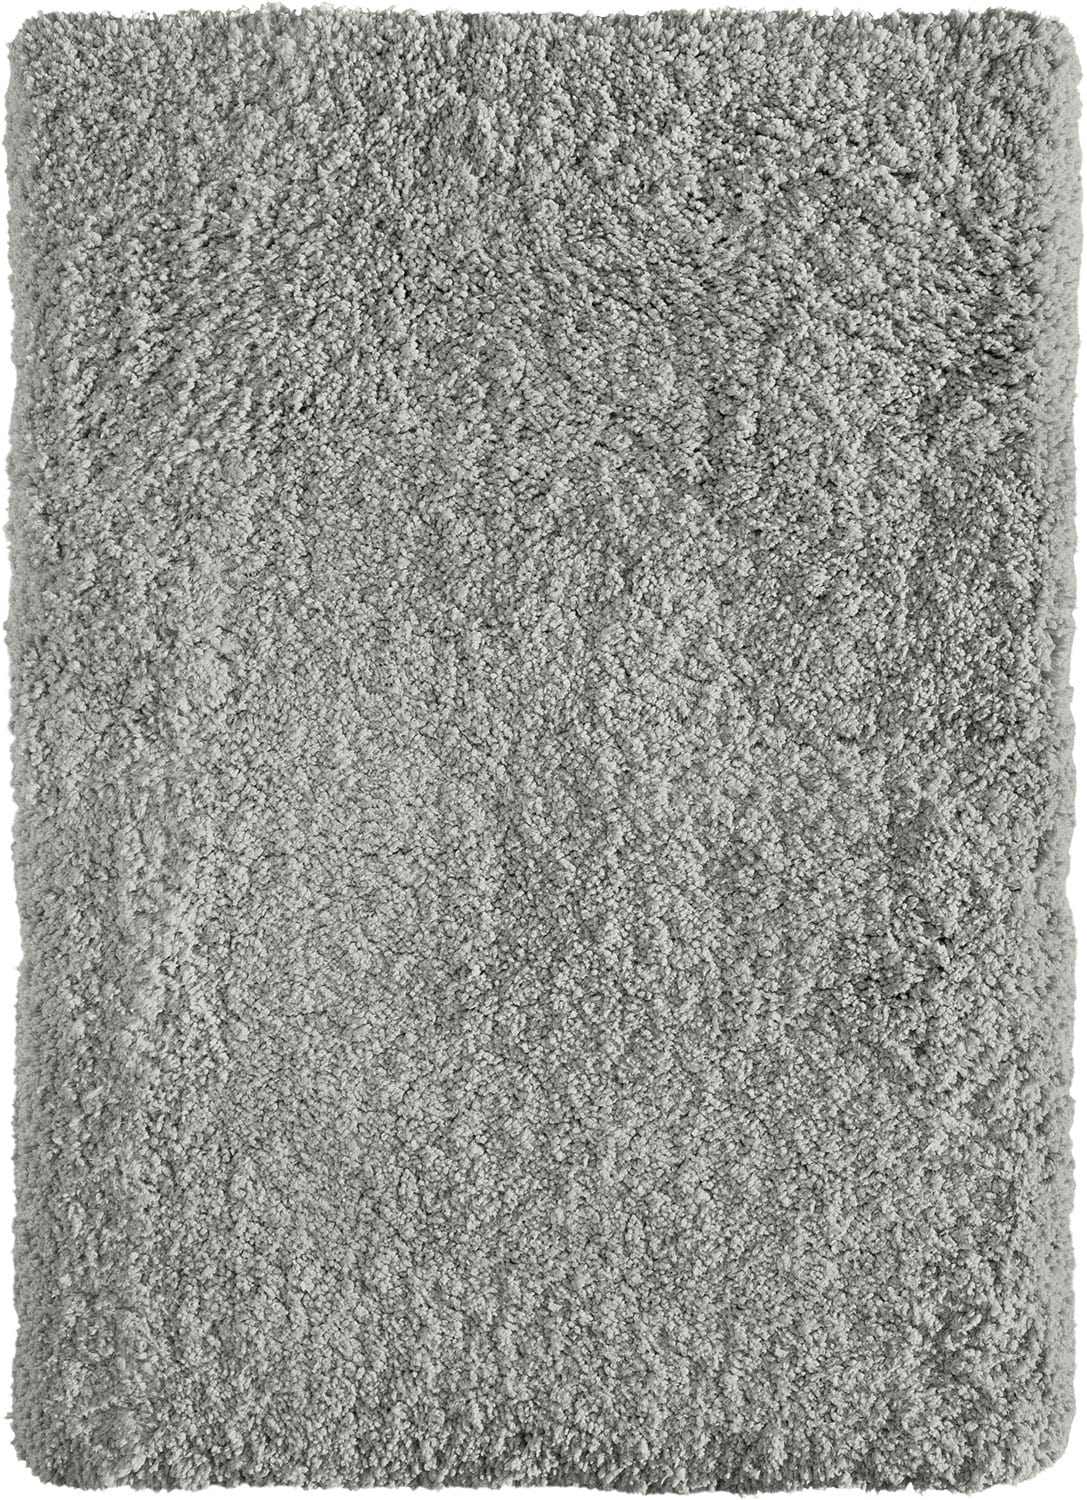 Alpaca Light Beige Area Rug – 5' x 8'